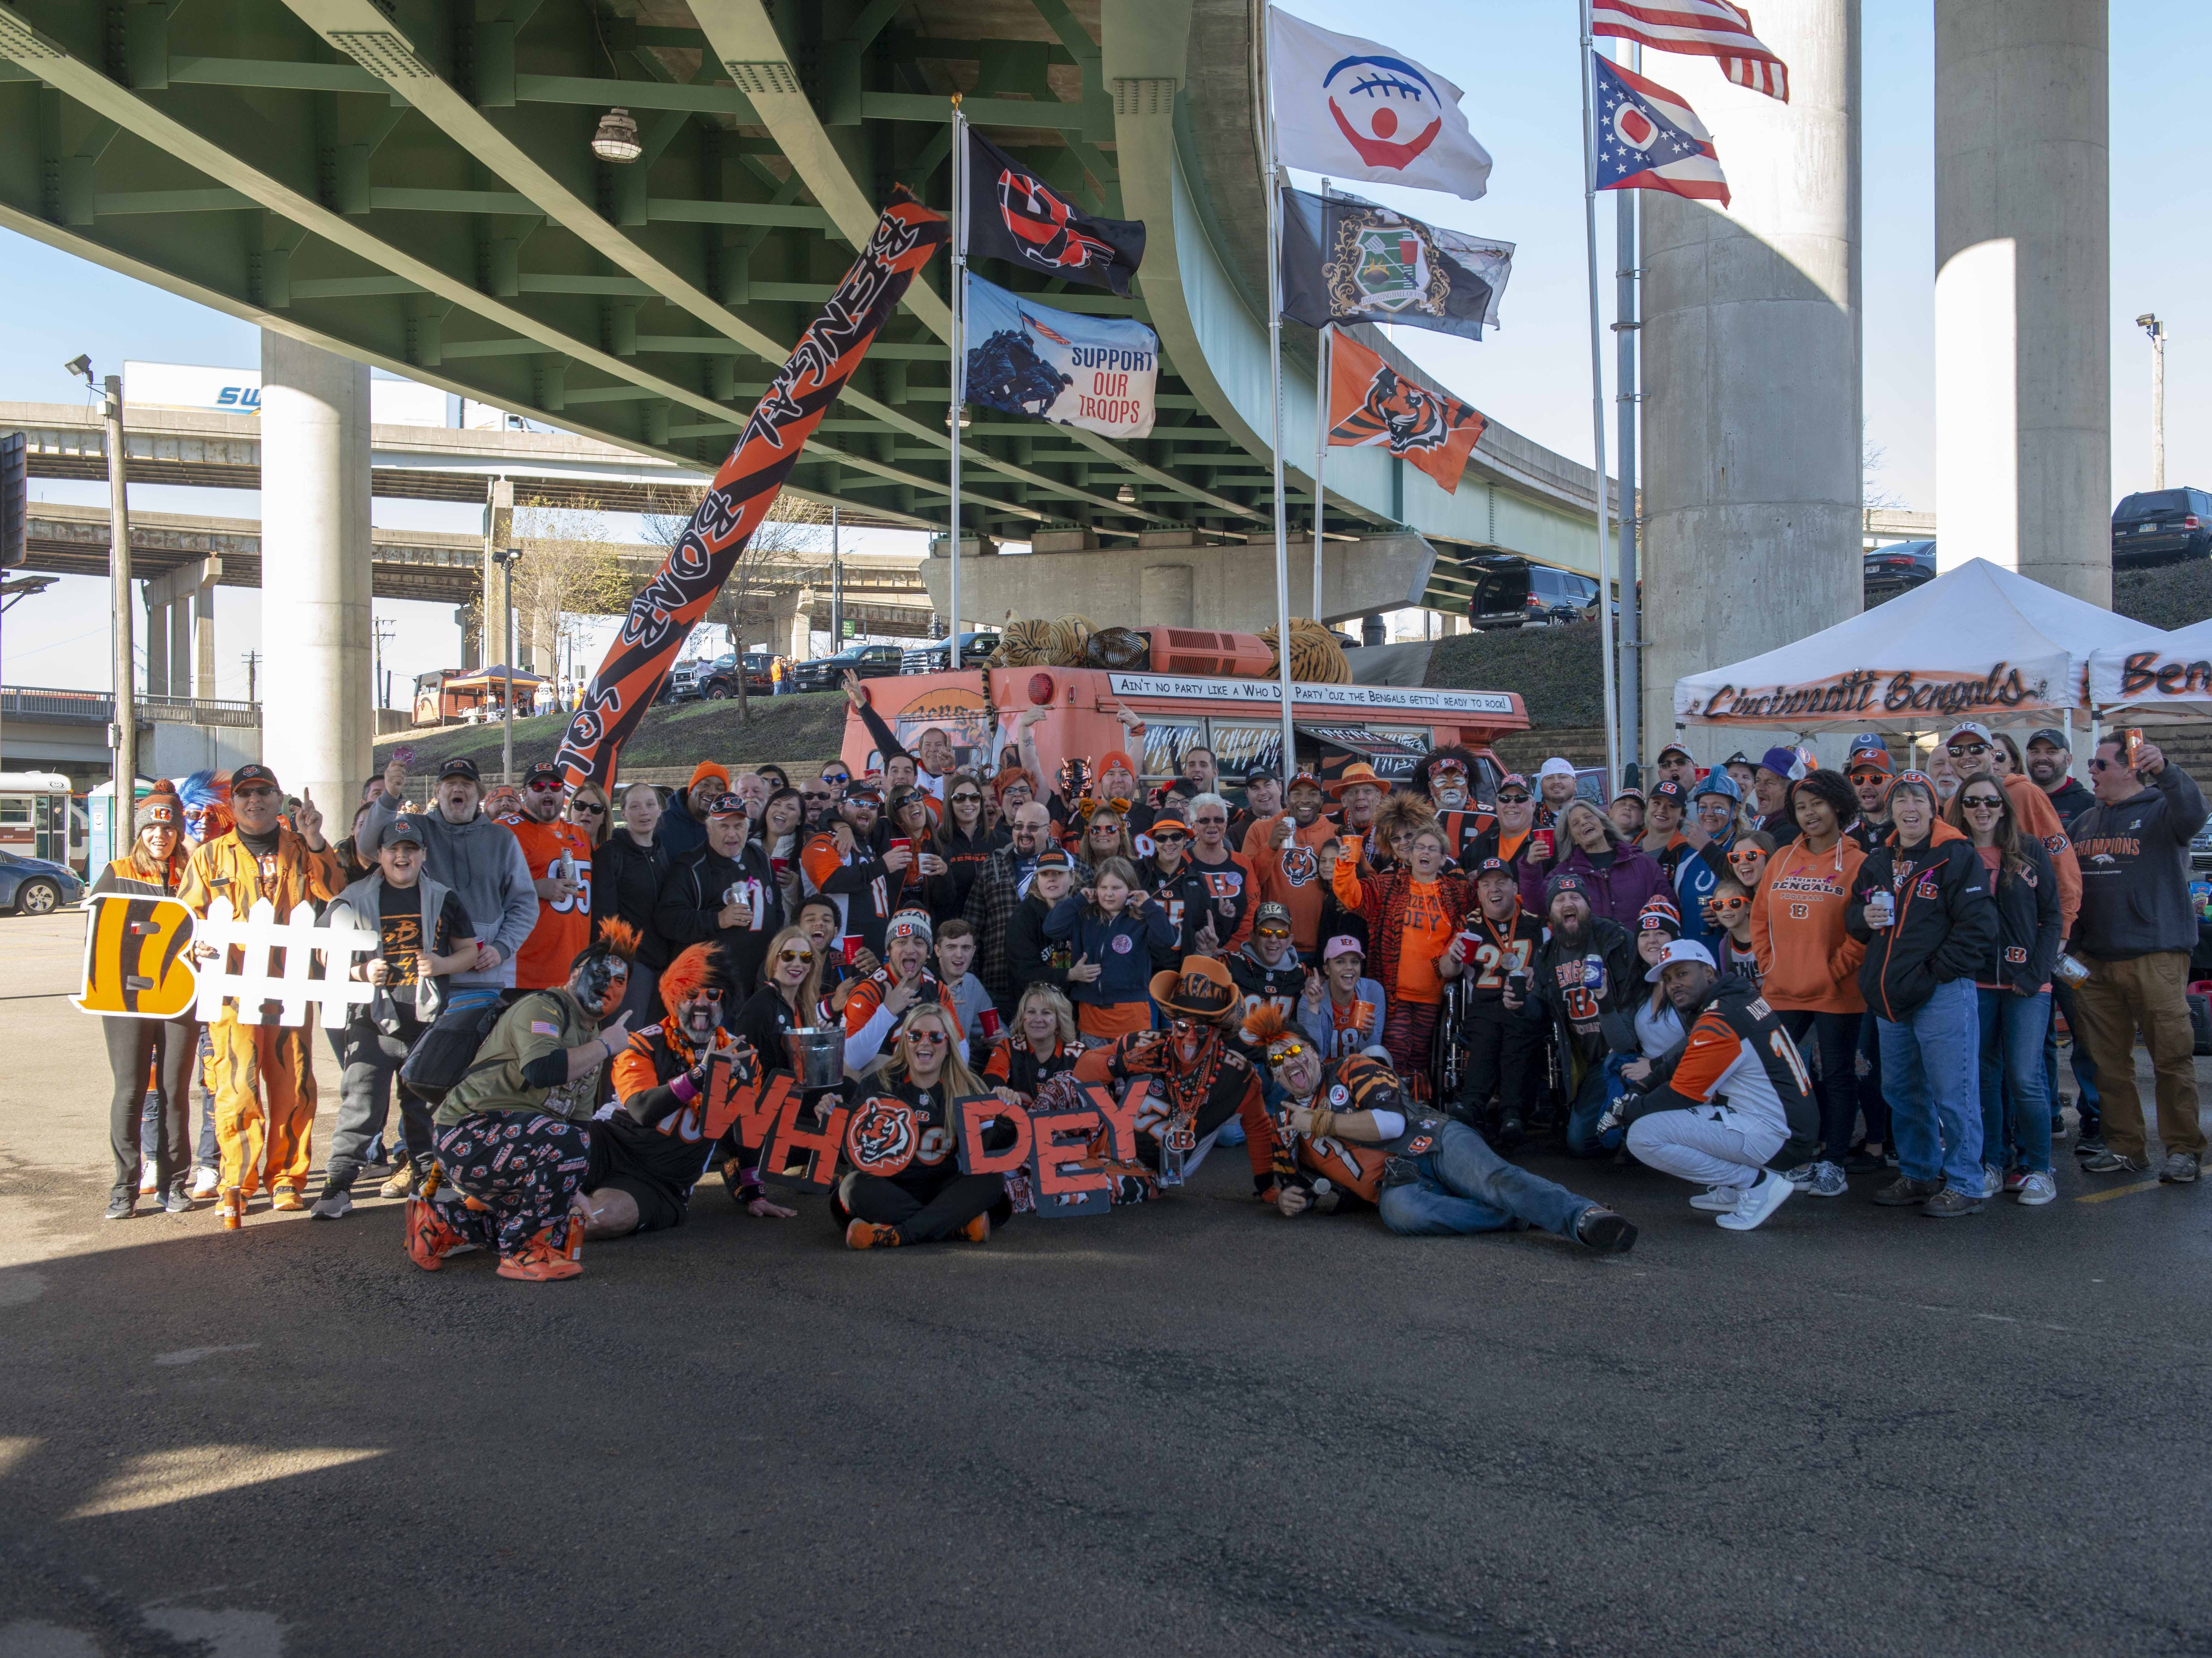 Cincinnati Bengals fans showed up for tailgating parties as the Cincinnati Bengals hosted the Denver Broncos at Paul Brown Stadium Sunday, December 2, 2018. The famous Bengal Bomb Squad.